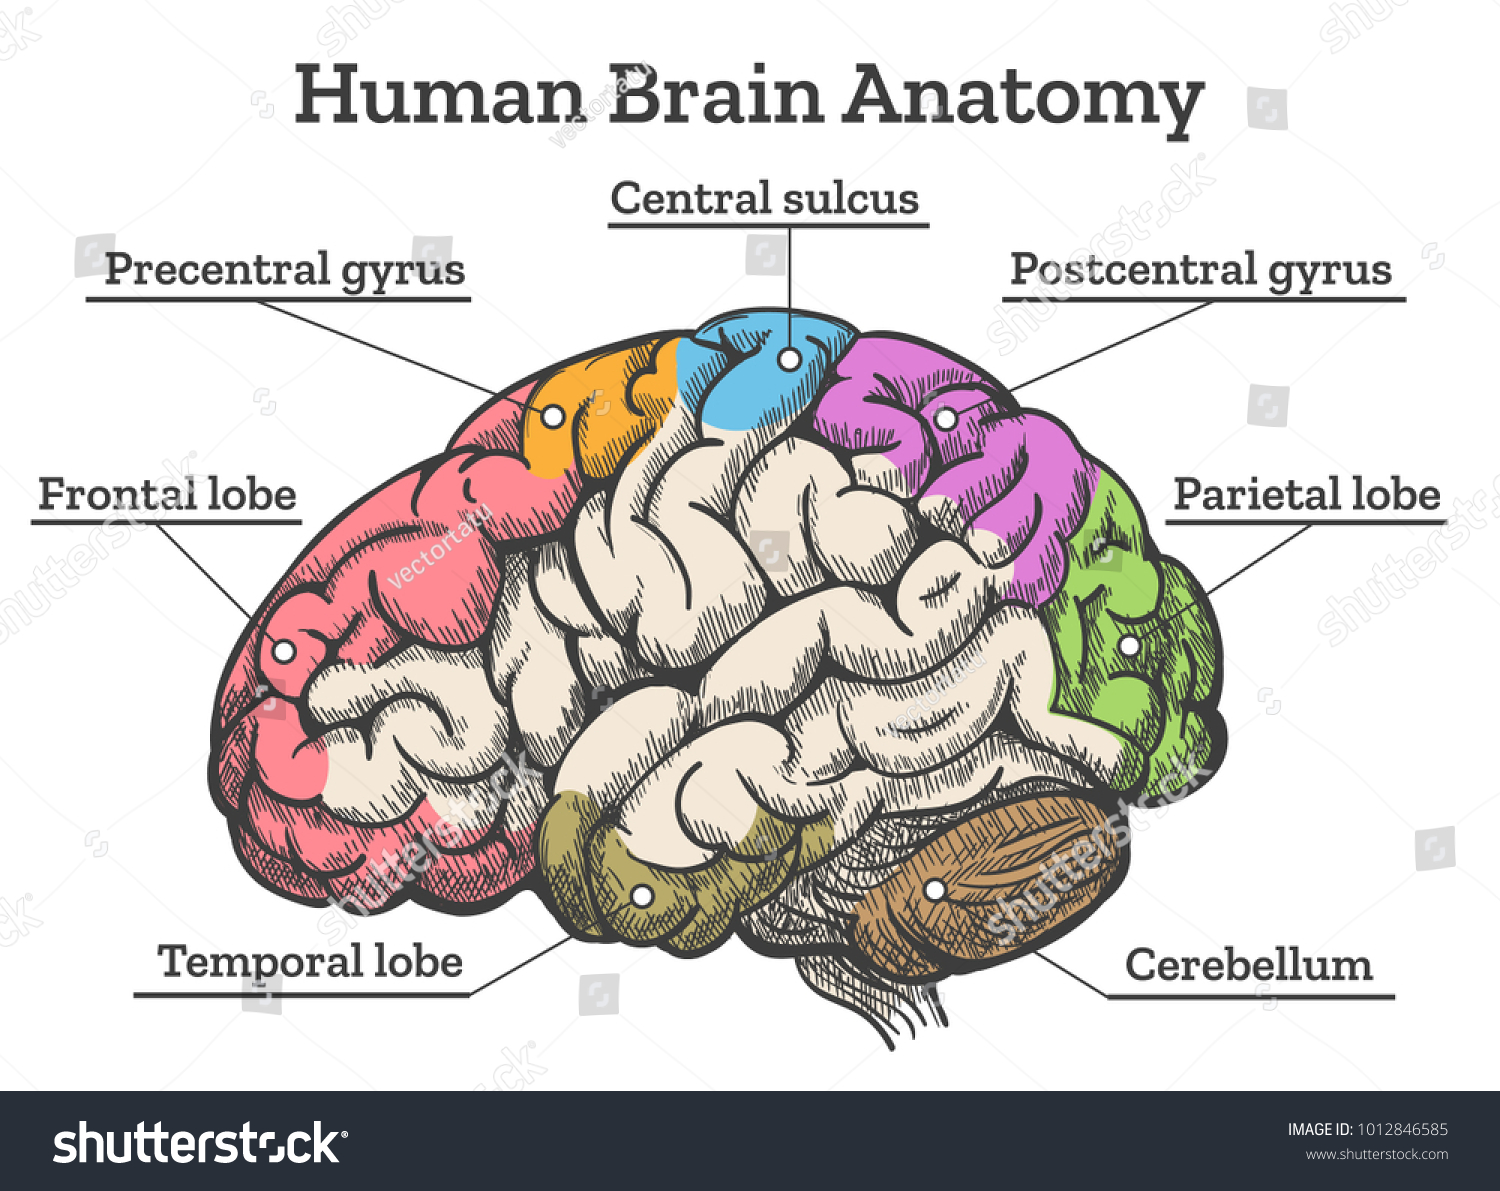 Human Brain Anatomy Diagram Sections Head Stock Vector (Royalty Free ...